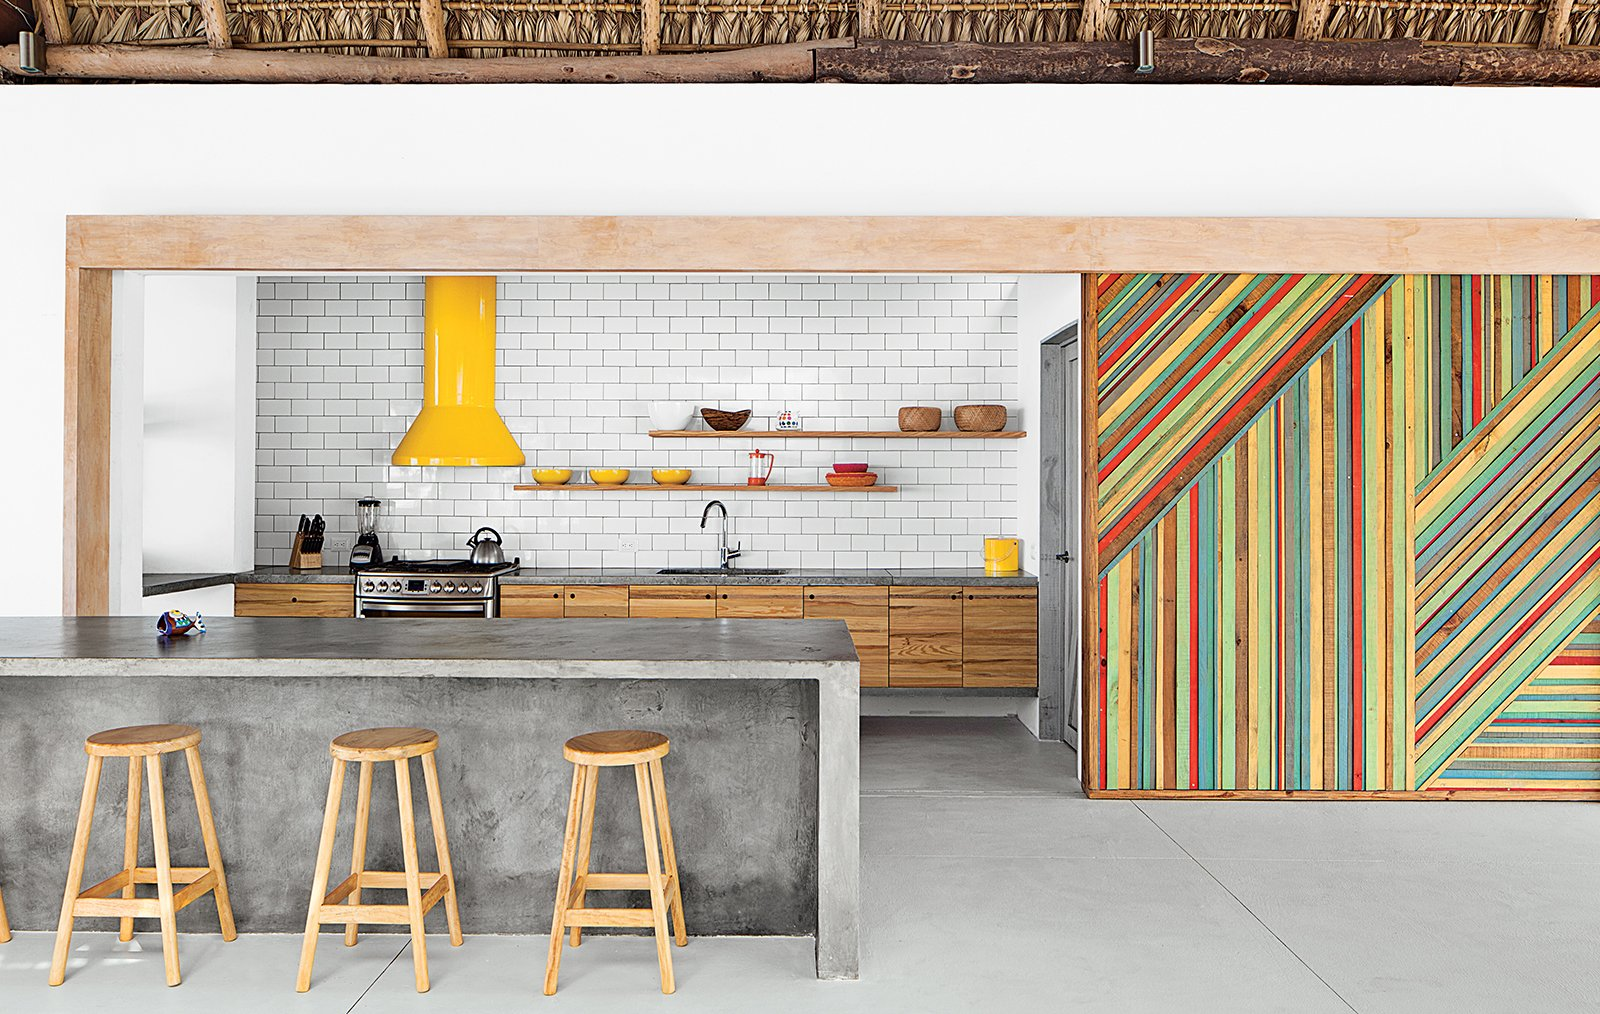 By eliminating walls and incorporating a series of interior gardens, architect José Roberto Paredes creates an eclectic and inspired El Salvador beach house. In the kitchen, rough-hewn materials like a eucalyptus-log-and-thatch roof offset the monolithic concrete island and glossy subway tile backsplash. Claudia & Harry Washington built the vivid wooden sliding walls, which are inspired by the palm leaves that change color and create diagonal patterns in trees near the house. The bar stools were a street market discovery. Bursts of Yellow and Indoor Gardens Are Just Two Reasons to Love This Home - Photo 3 of 6